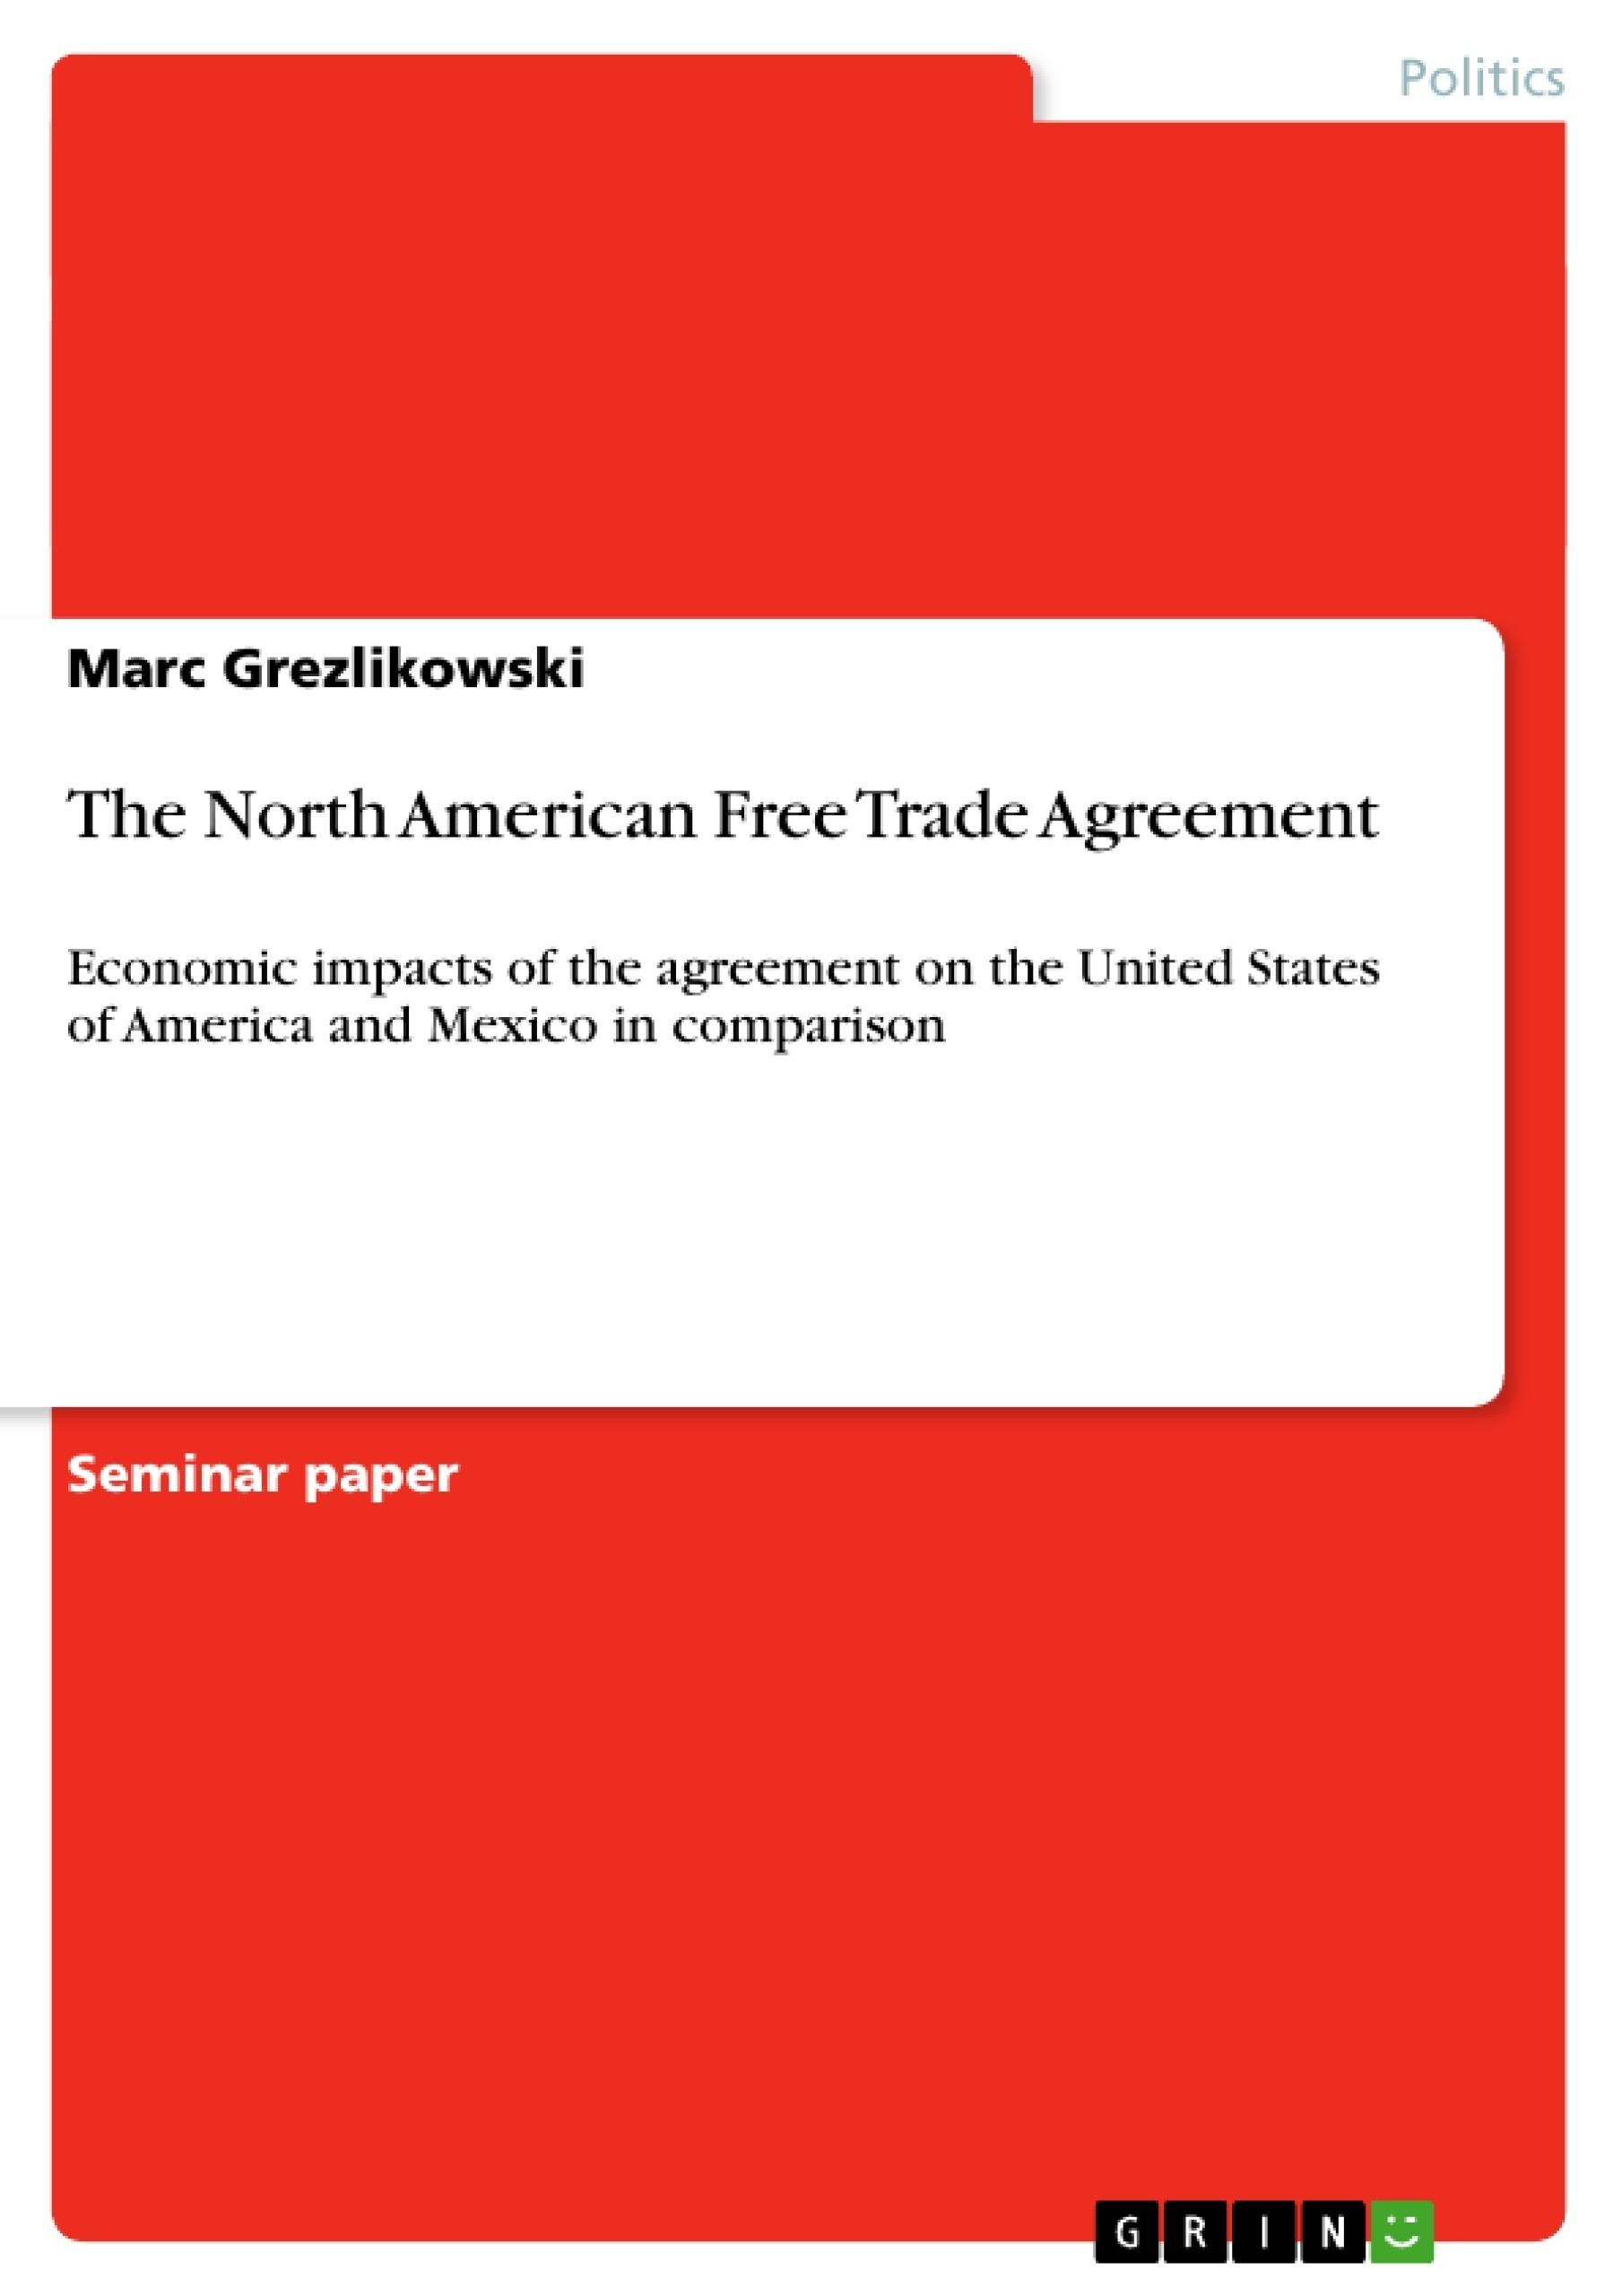 Title: The North American Free Trade Agreement